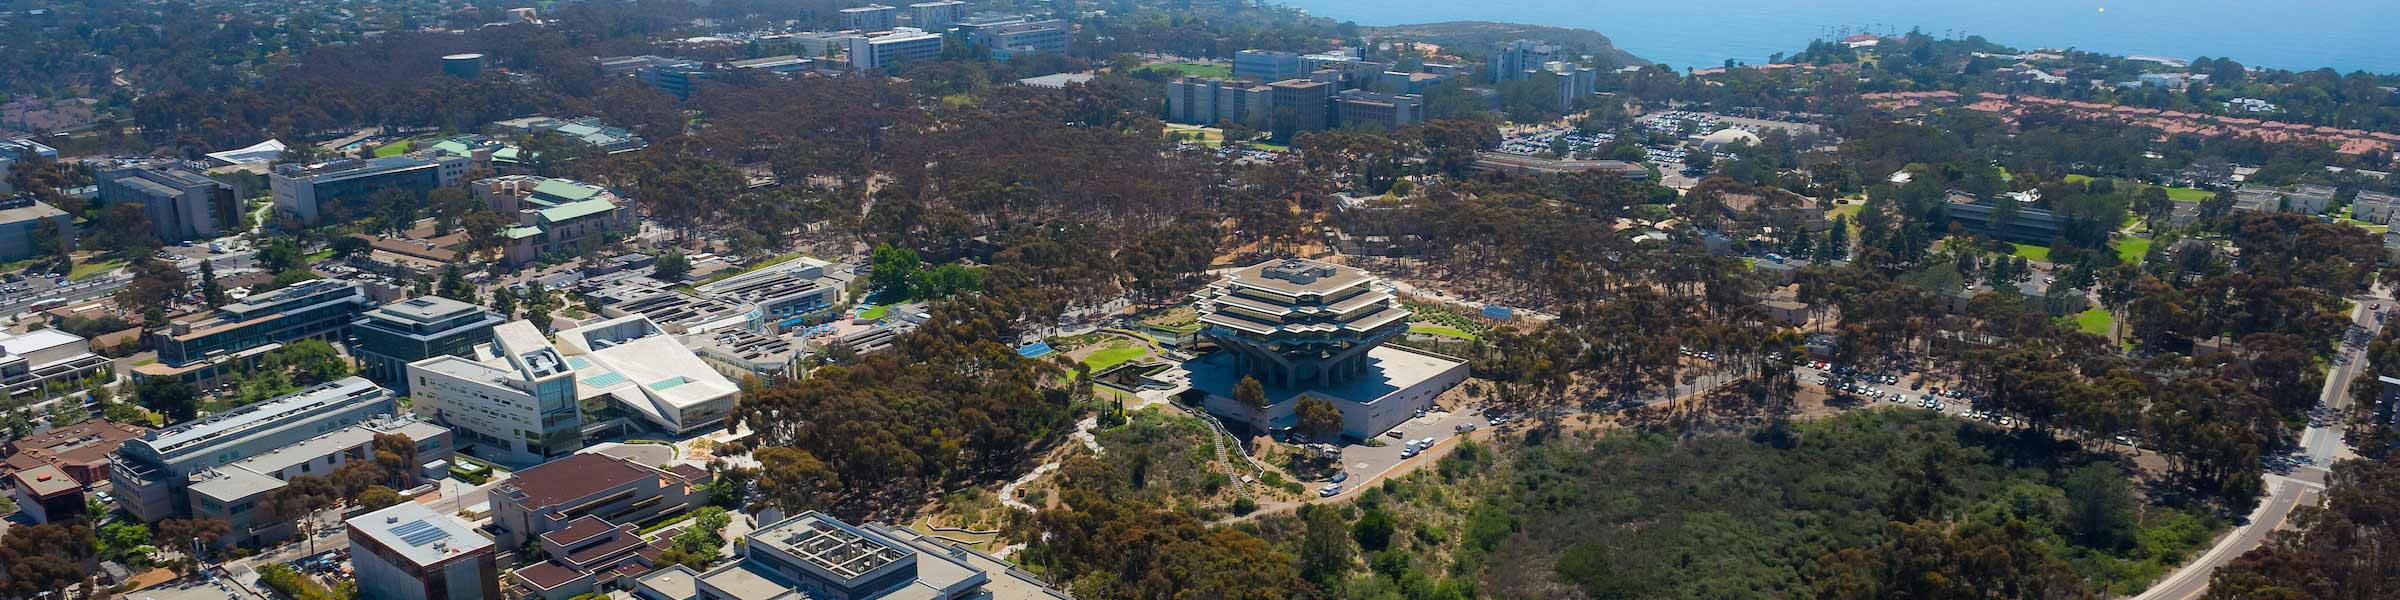 aerial photo of UC San Diego